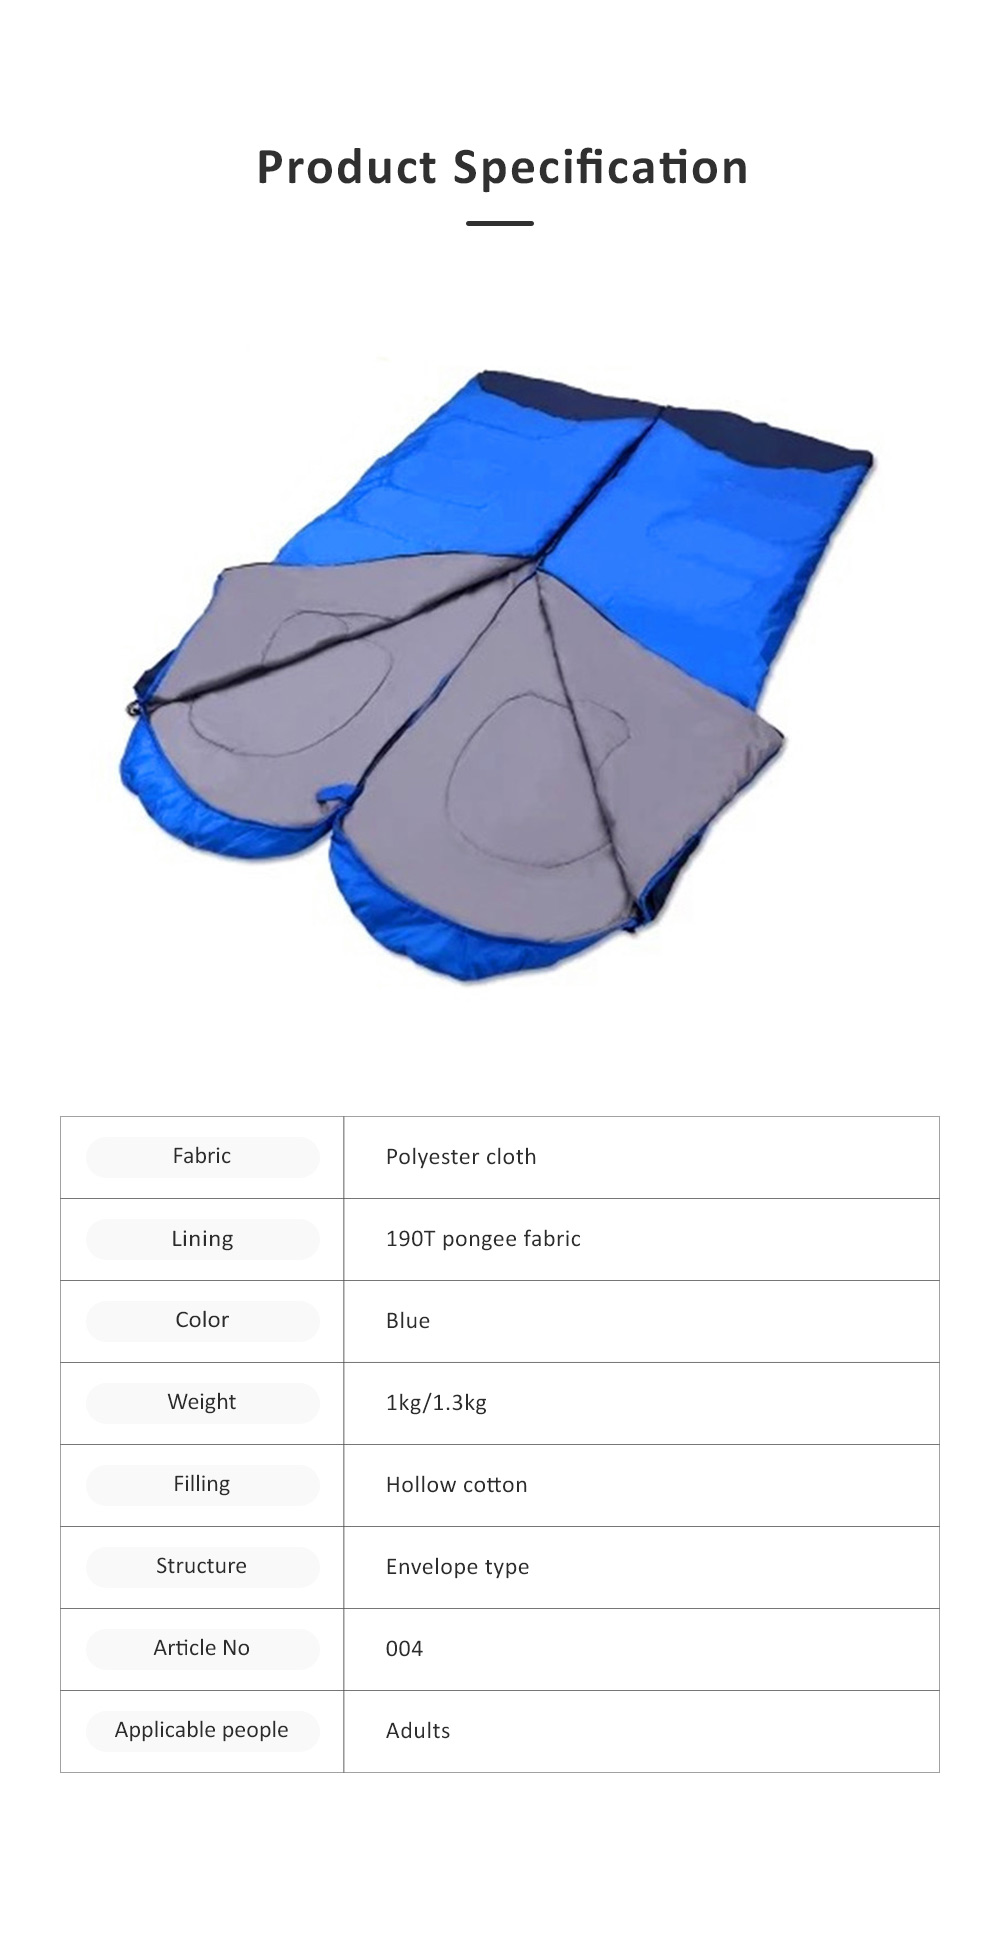 Portable Sleeping Sack Camping Equipment, Thicken Thermal High Quality Outdoor Bedding, One Kilogram Sleeping Bag for Adults 5